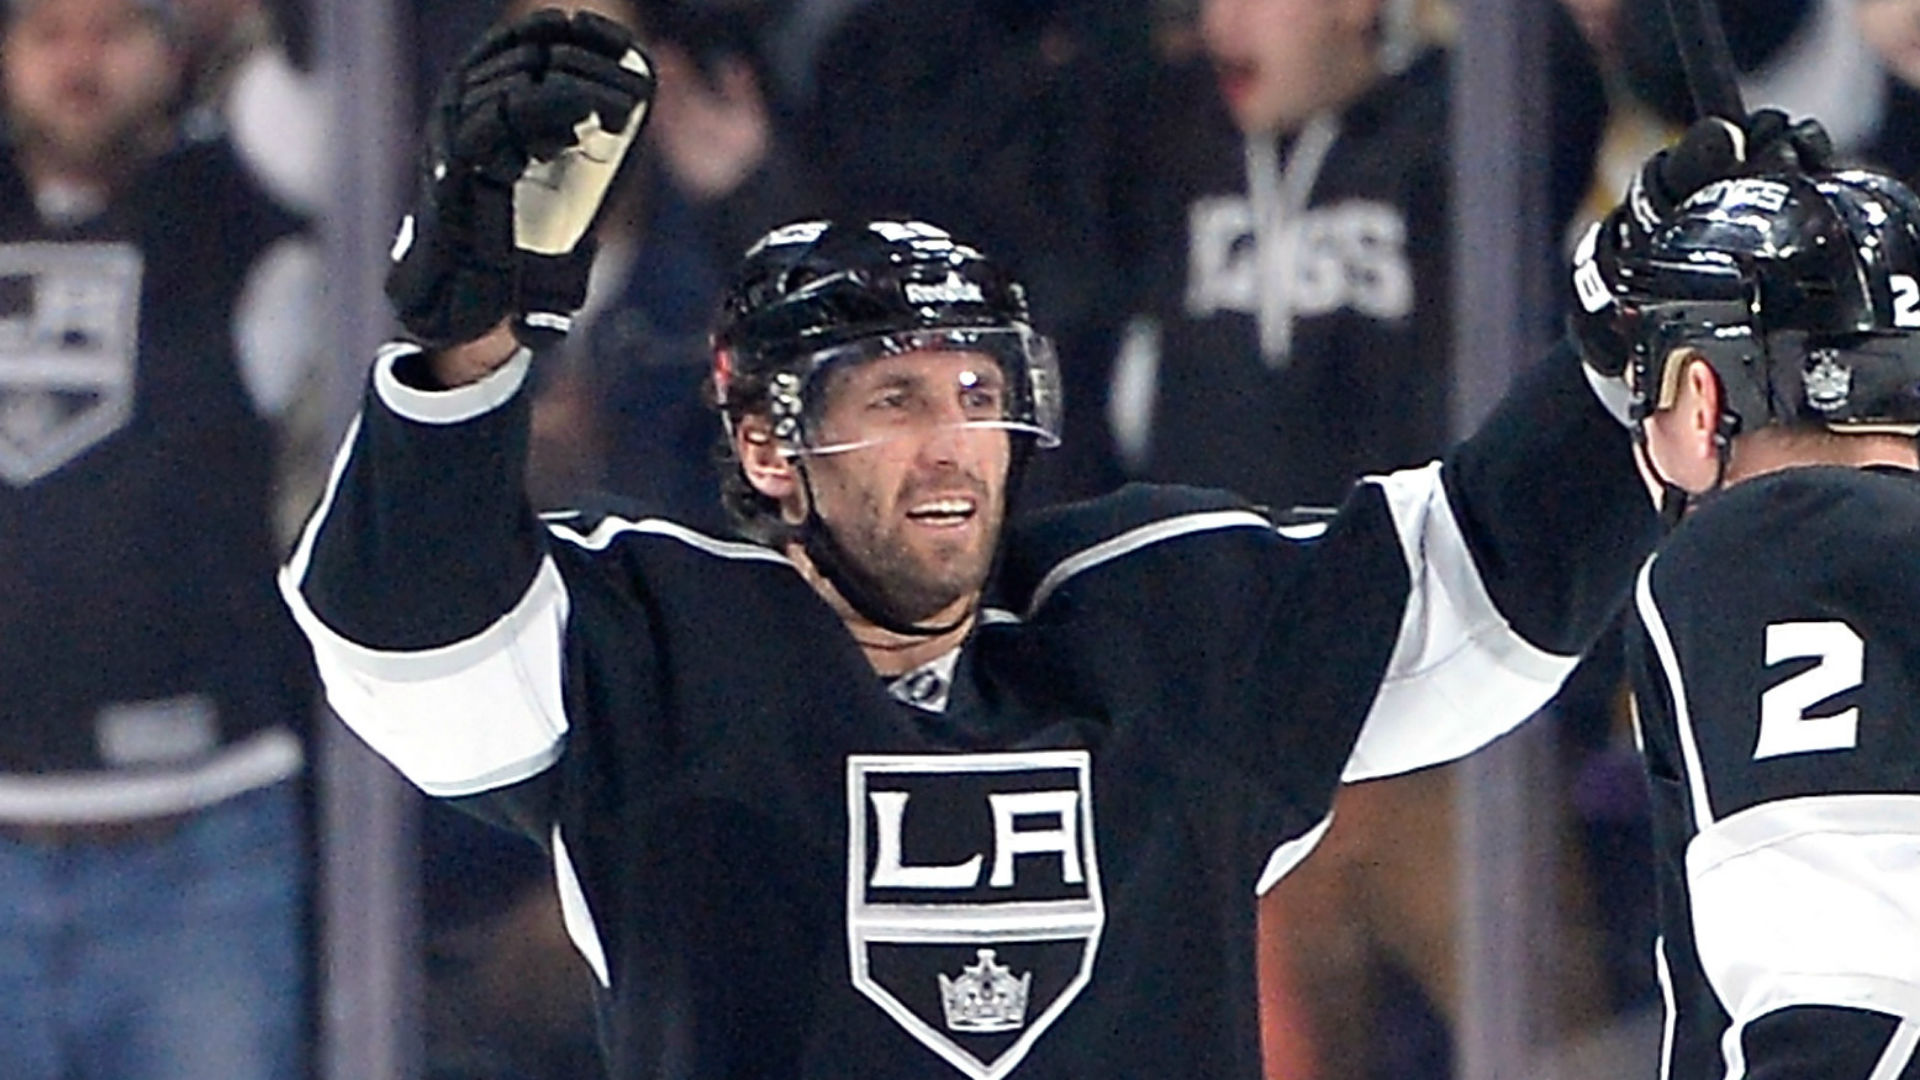 Details of Jarret Stoll's drug arrest emerge